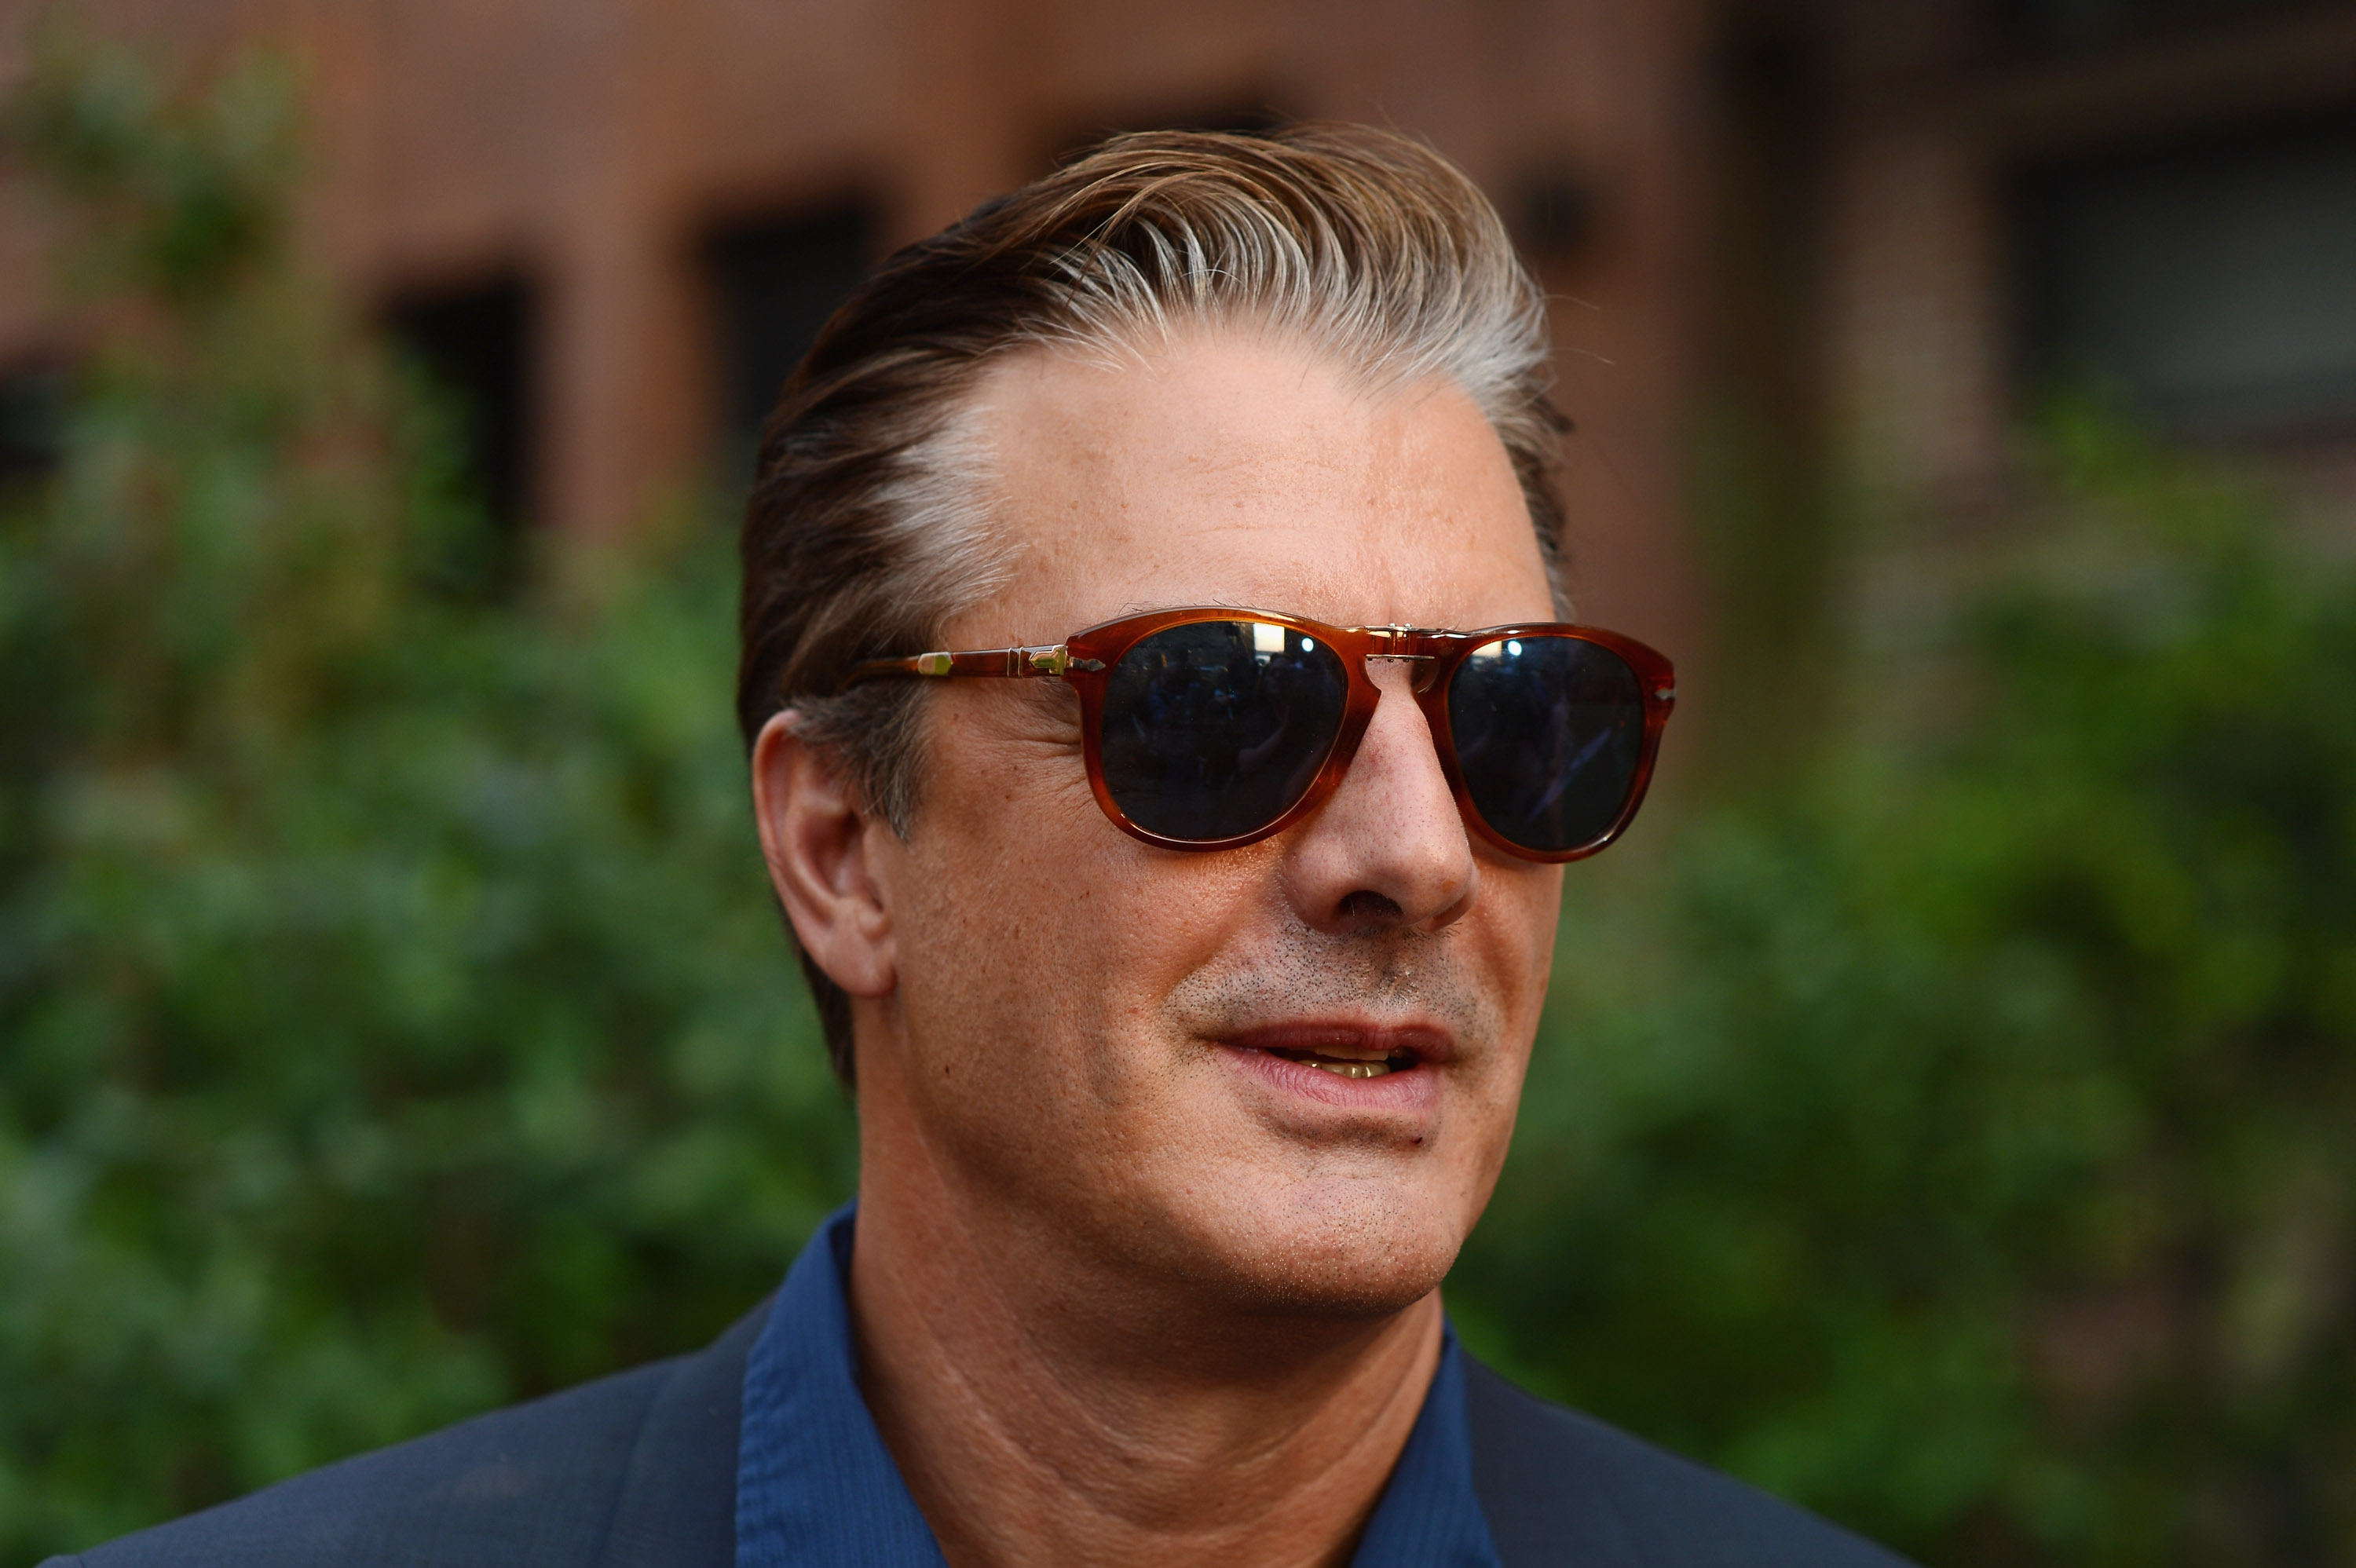 Caption: Chris Noth, Credit: Getty/Dimitrios Kambouris